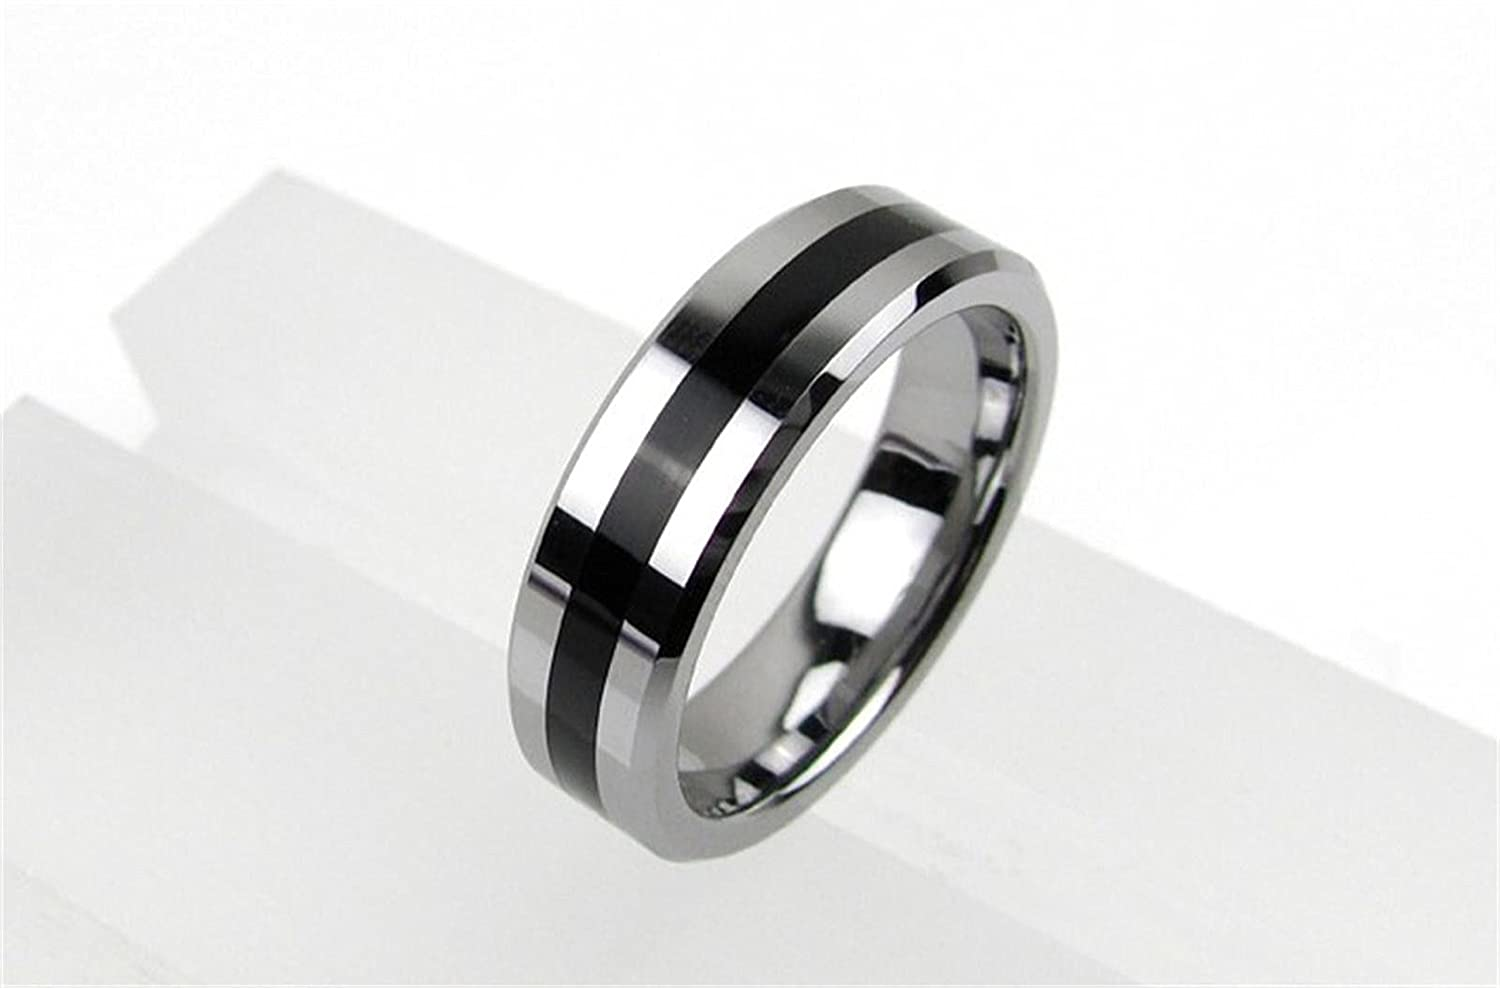 wholesale hematite women mujer jewelry anillos discolor and fashion of boho from love lol gifts wedding rings magnetic charms free ring for shipping discoloration item men festa mood in